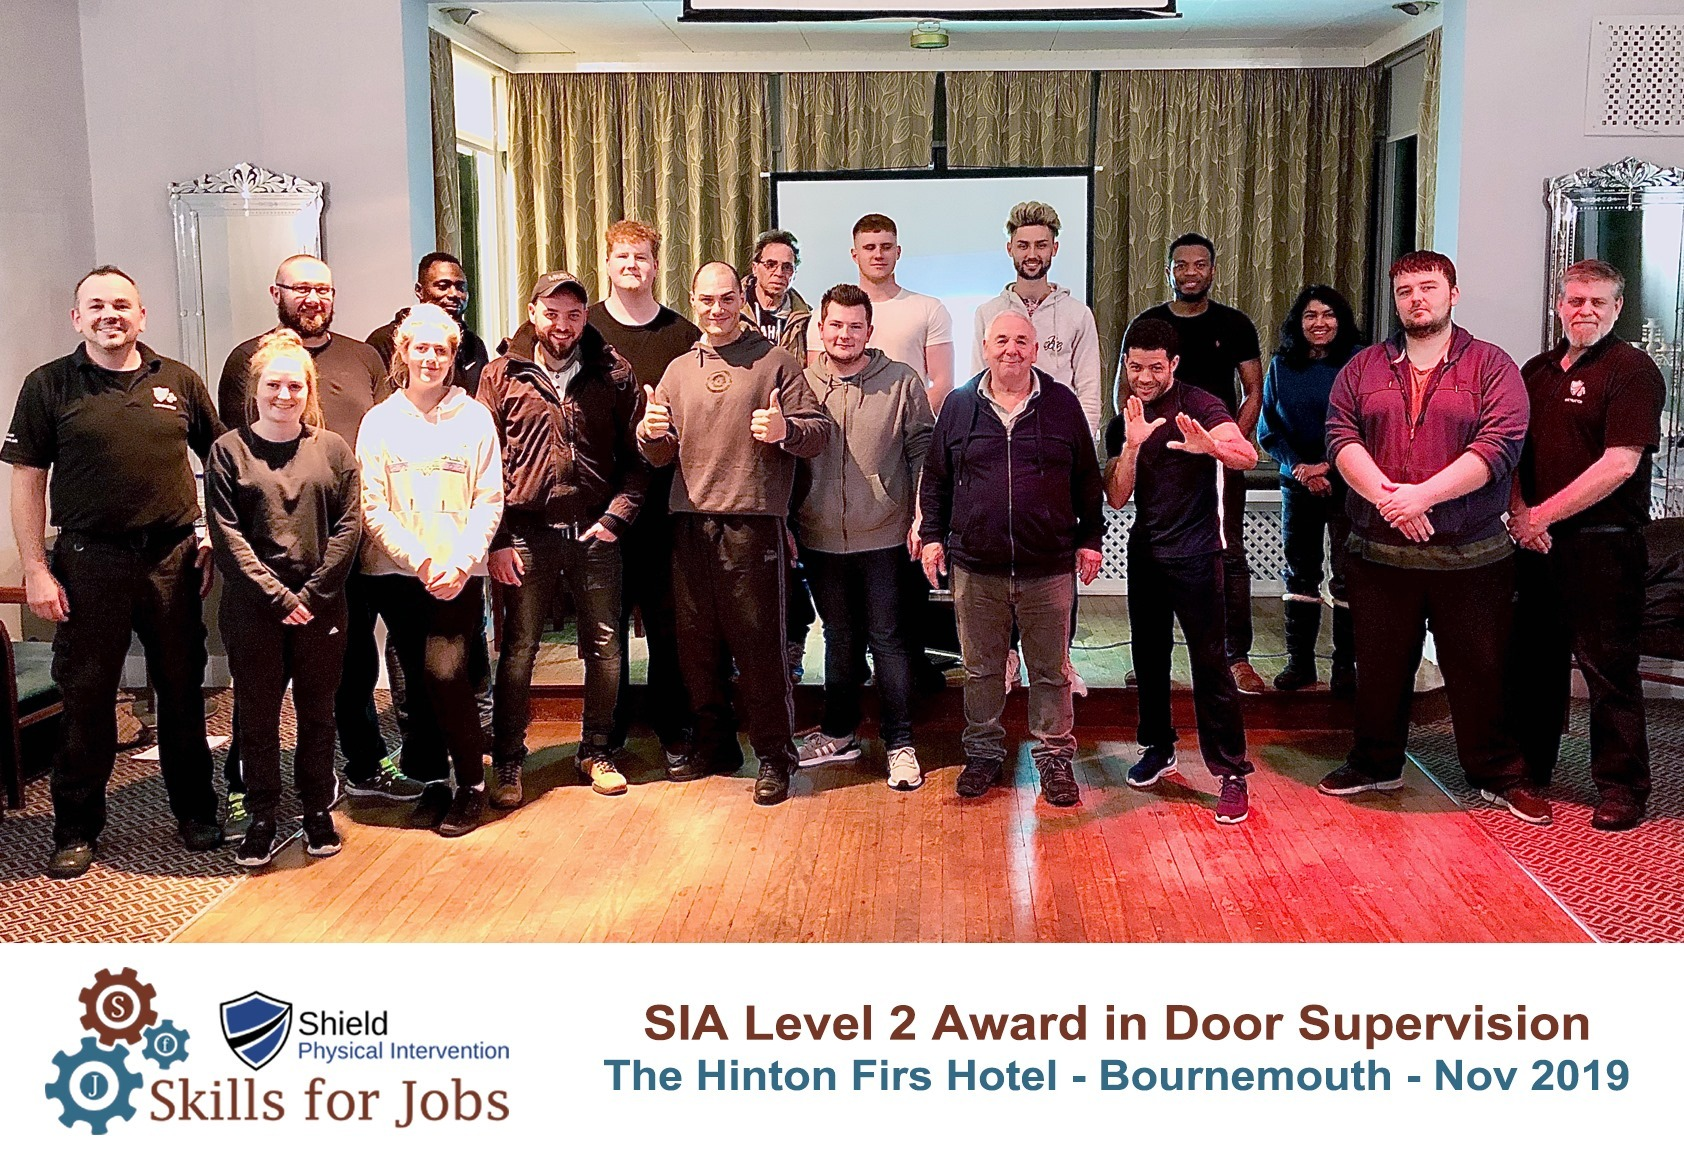 Bournemouth - SIA Level 2 Award in Door Supervision - November 2019